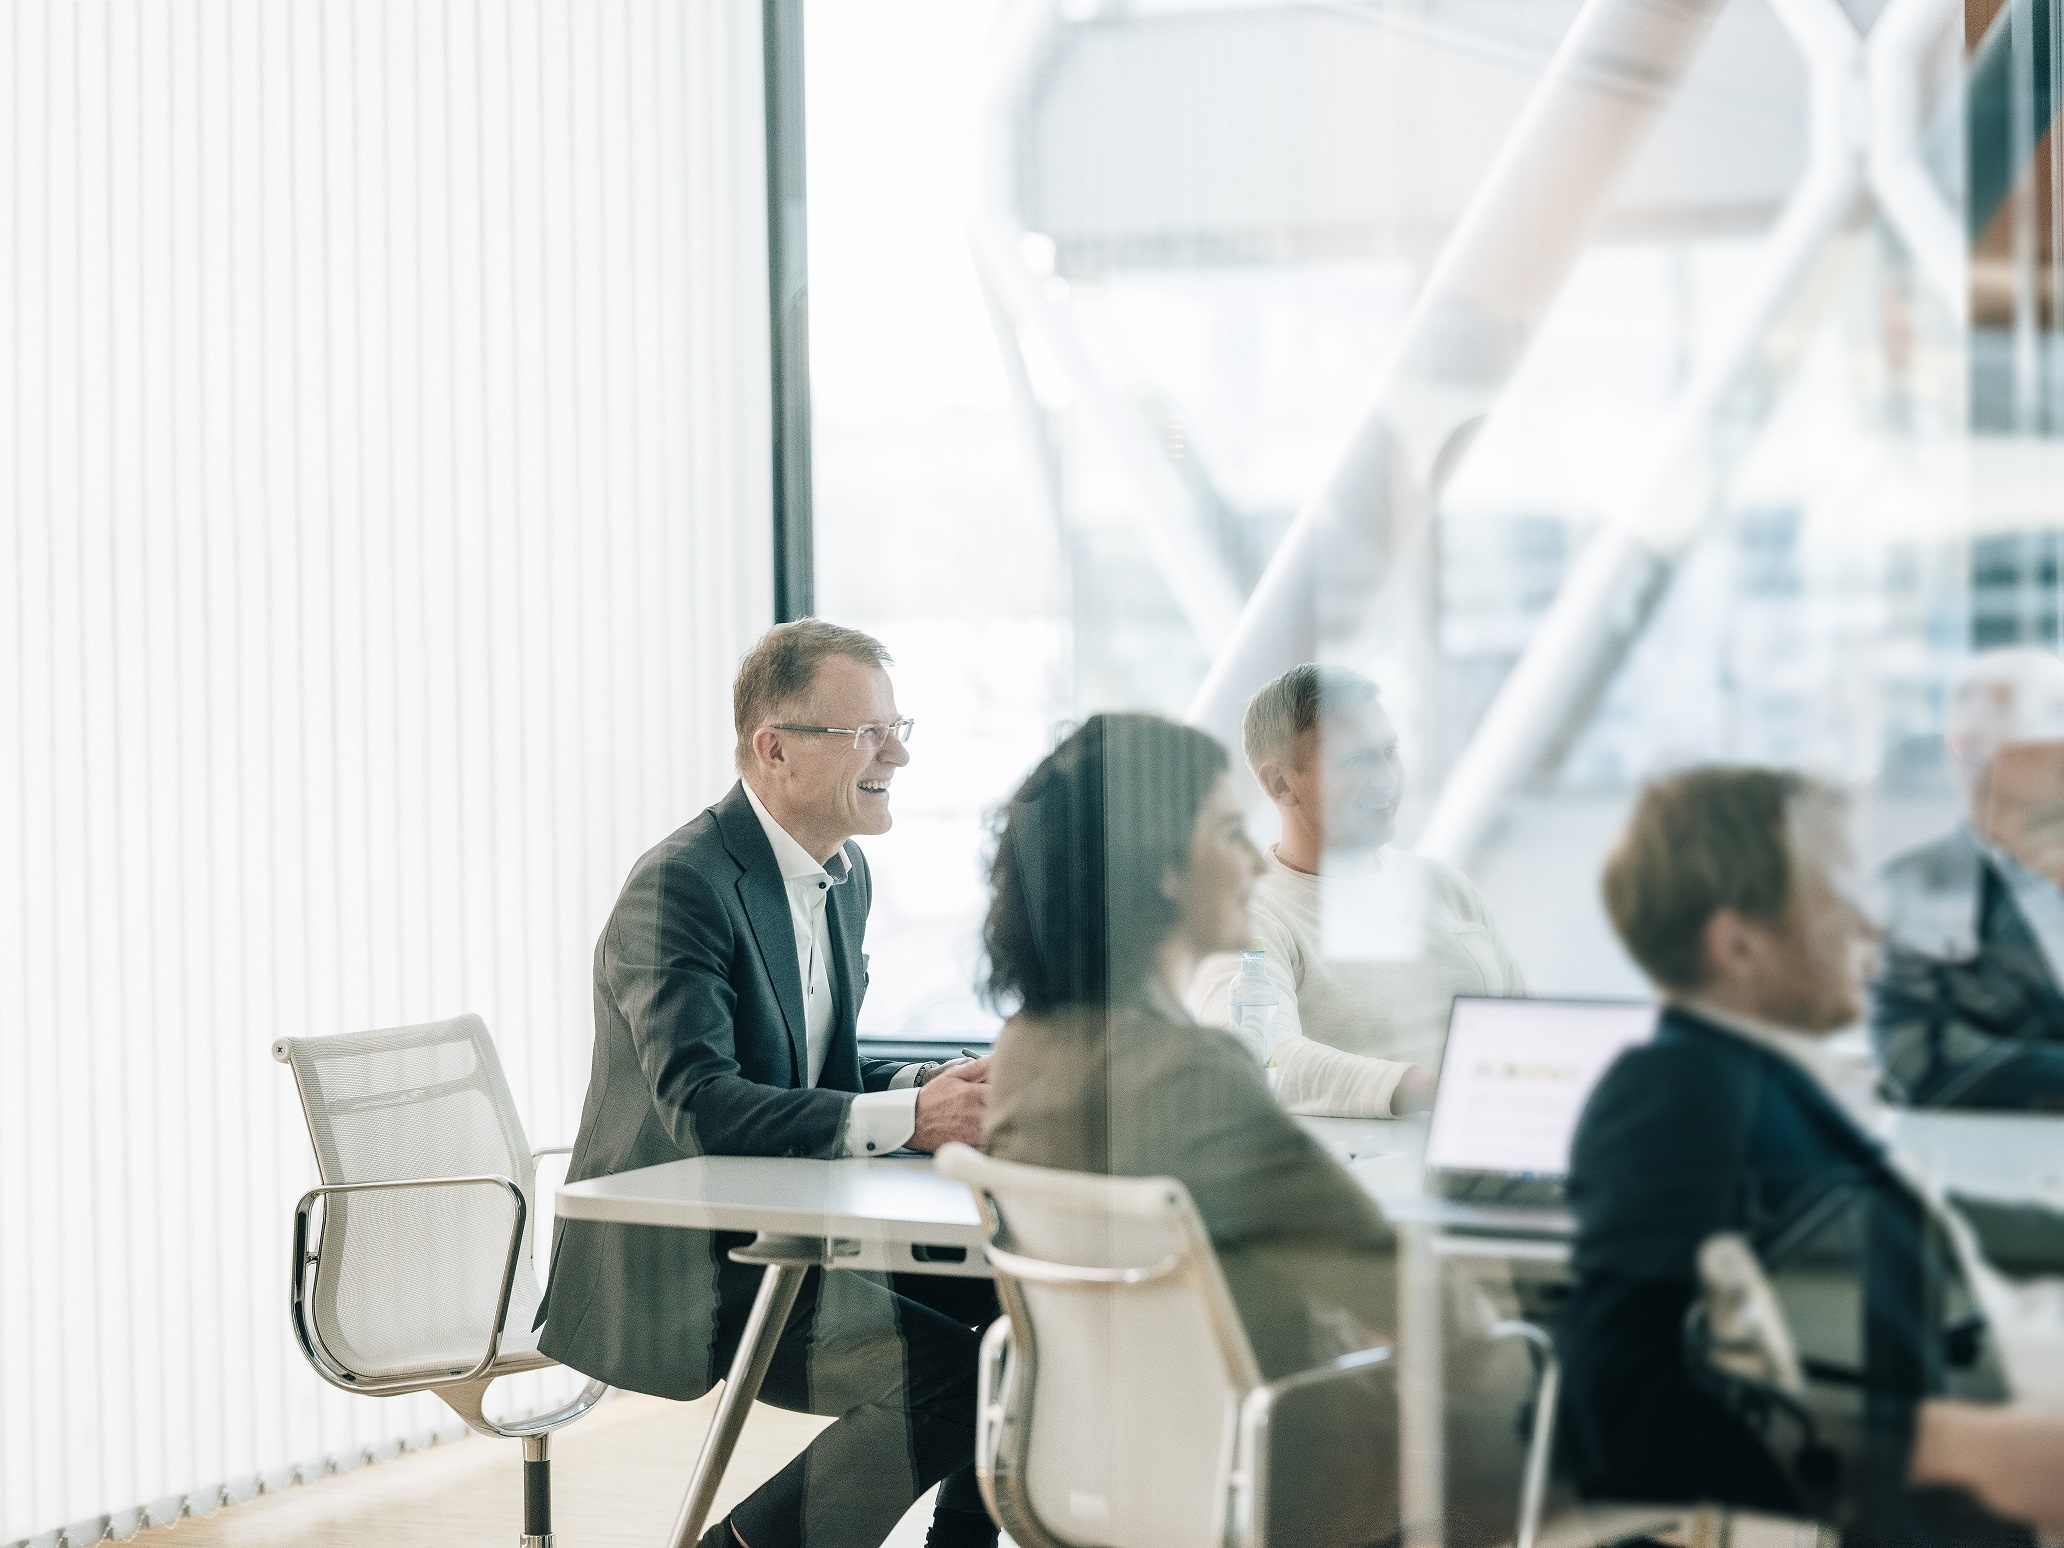 Technology drives the evolution of meeting culture